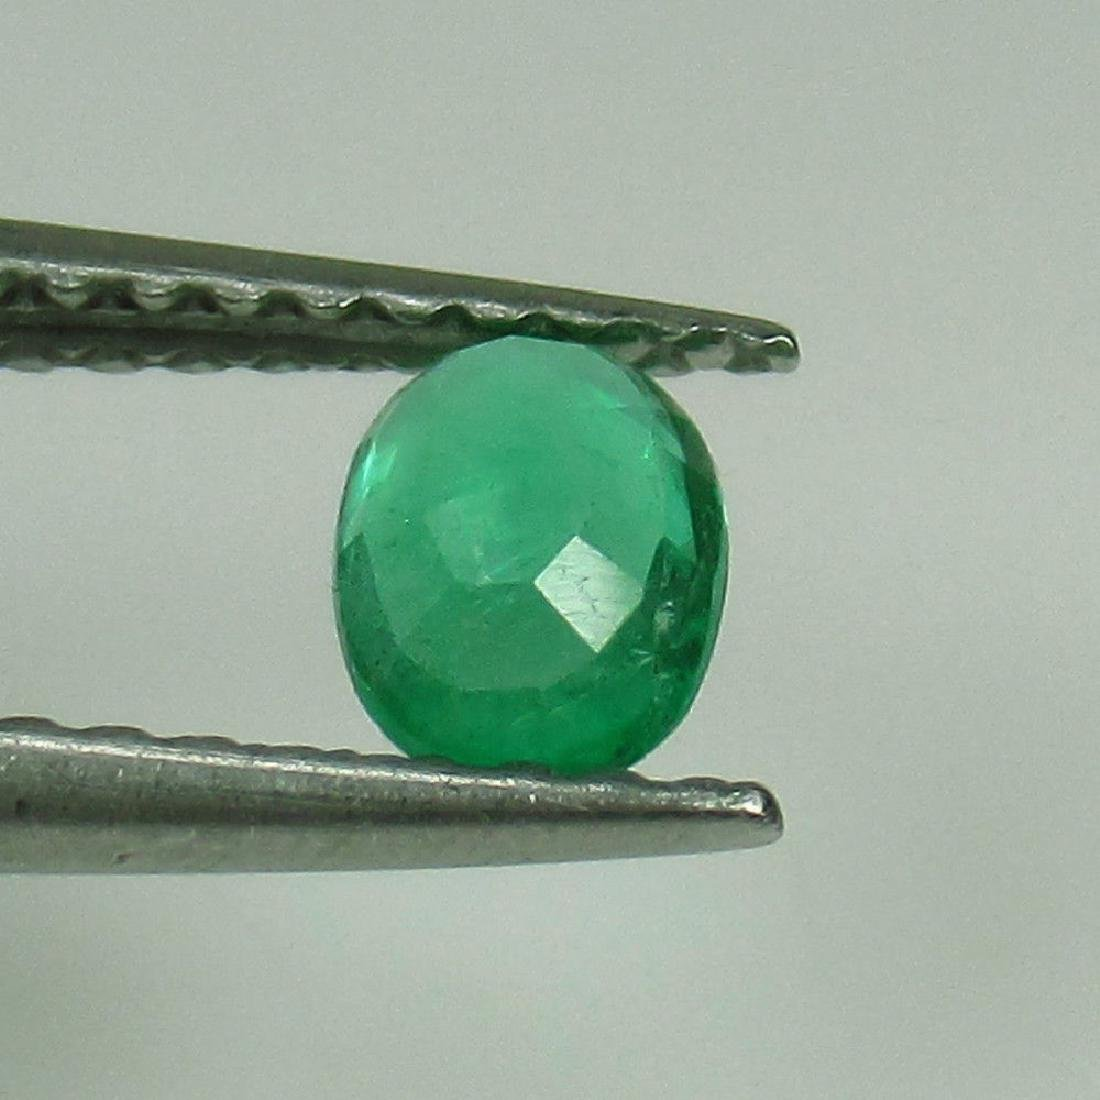 0.29 Ct Genuine Zambian Emerald Nice Oval Cut - 2